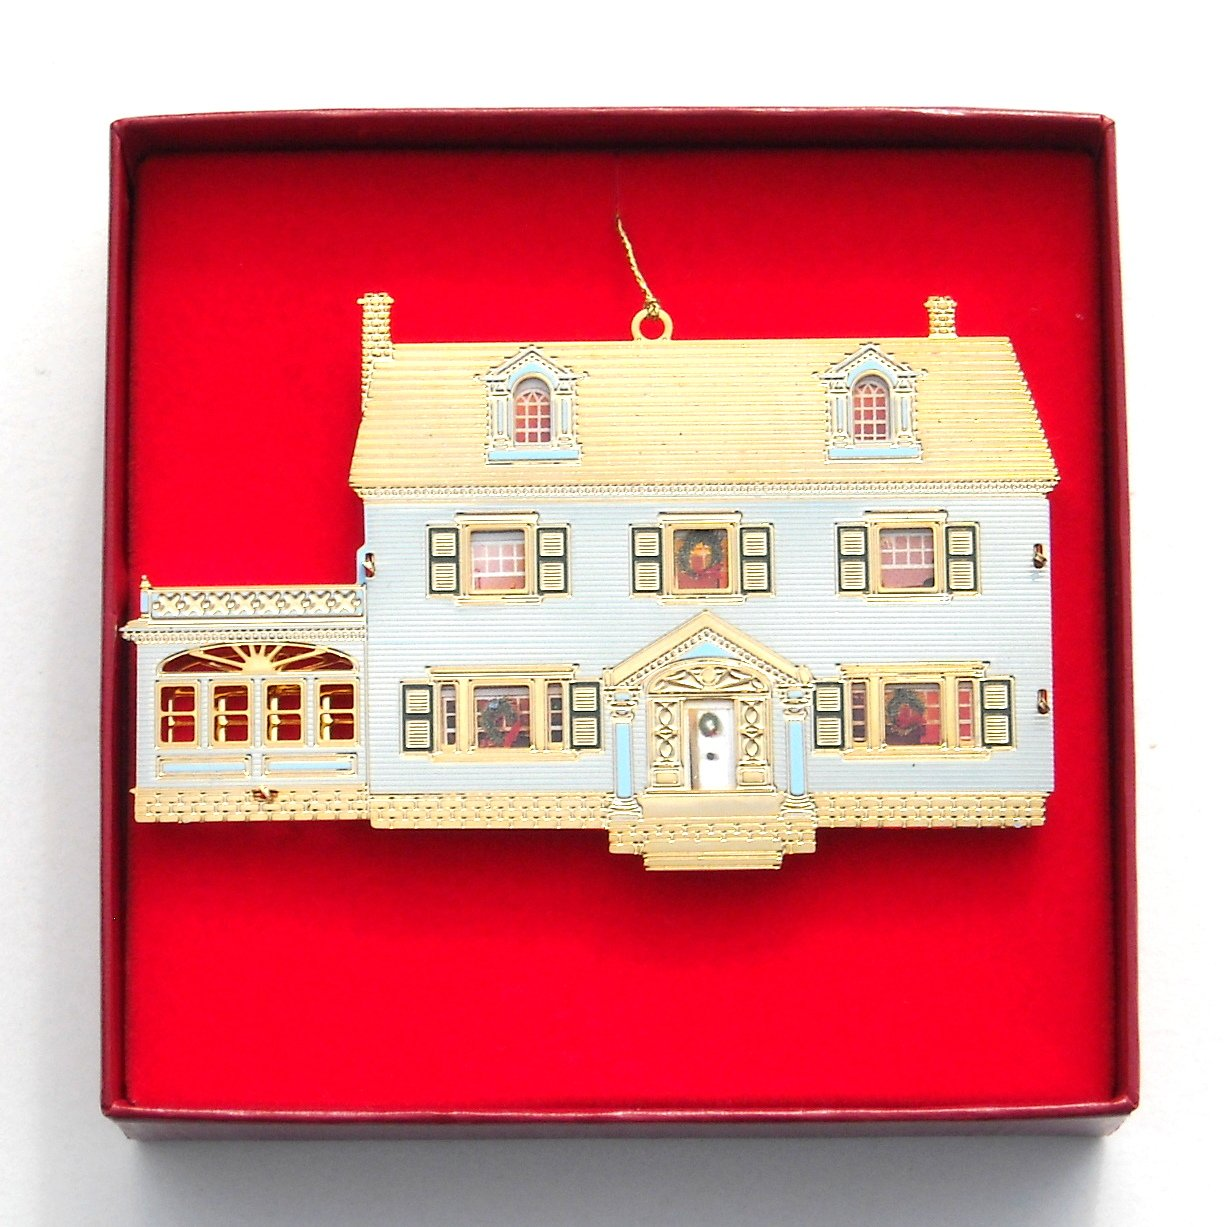 1920s Doll House Collection Bing & Grondahl 24k Gold Finish Christmas ornament